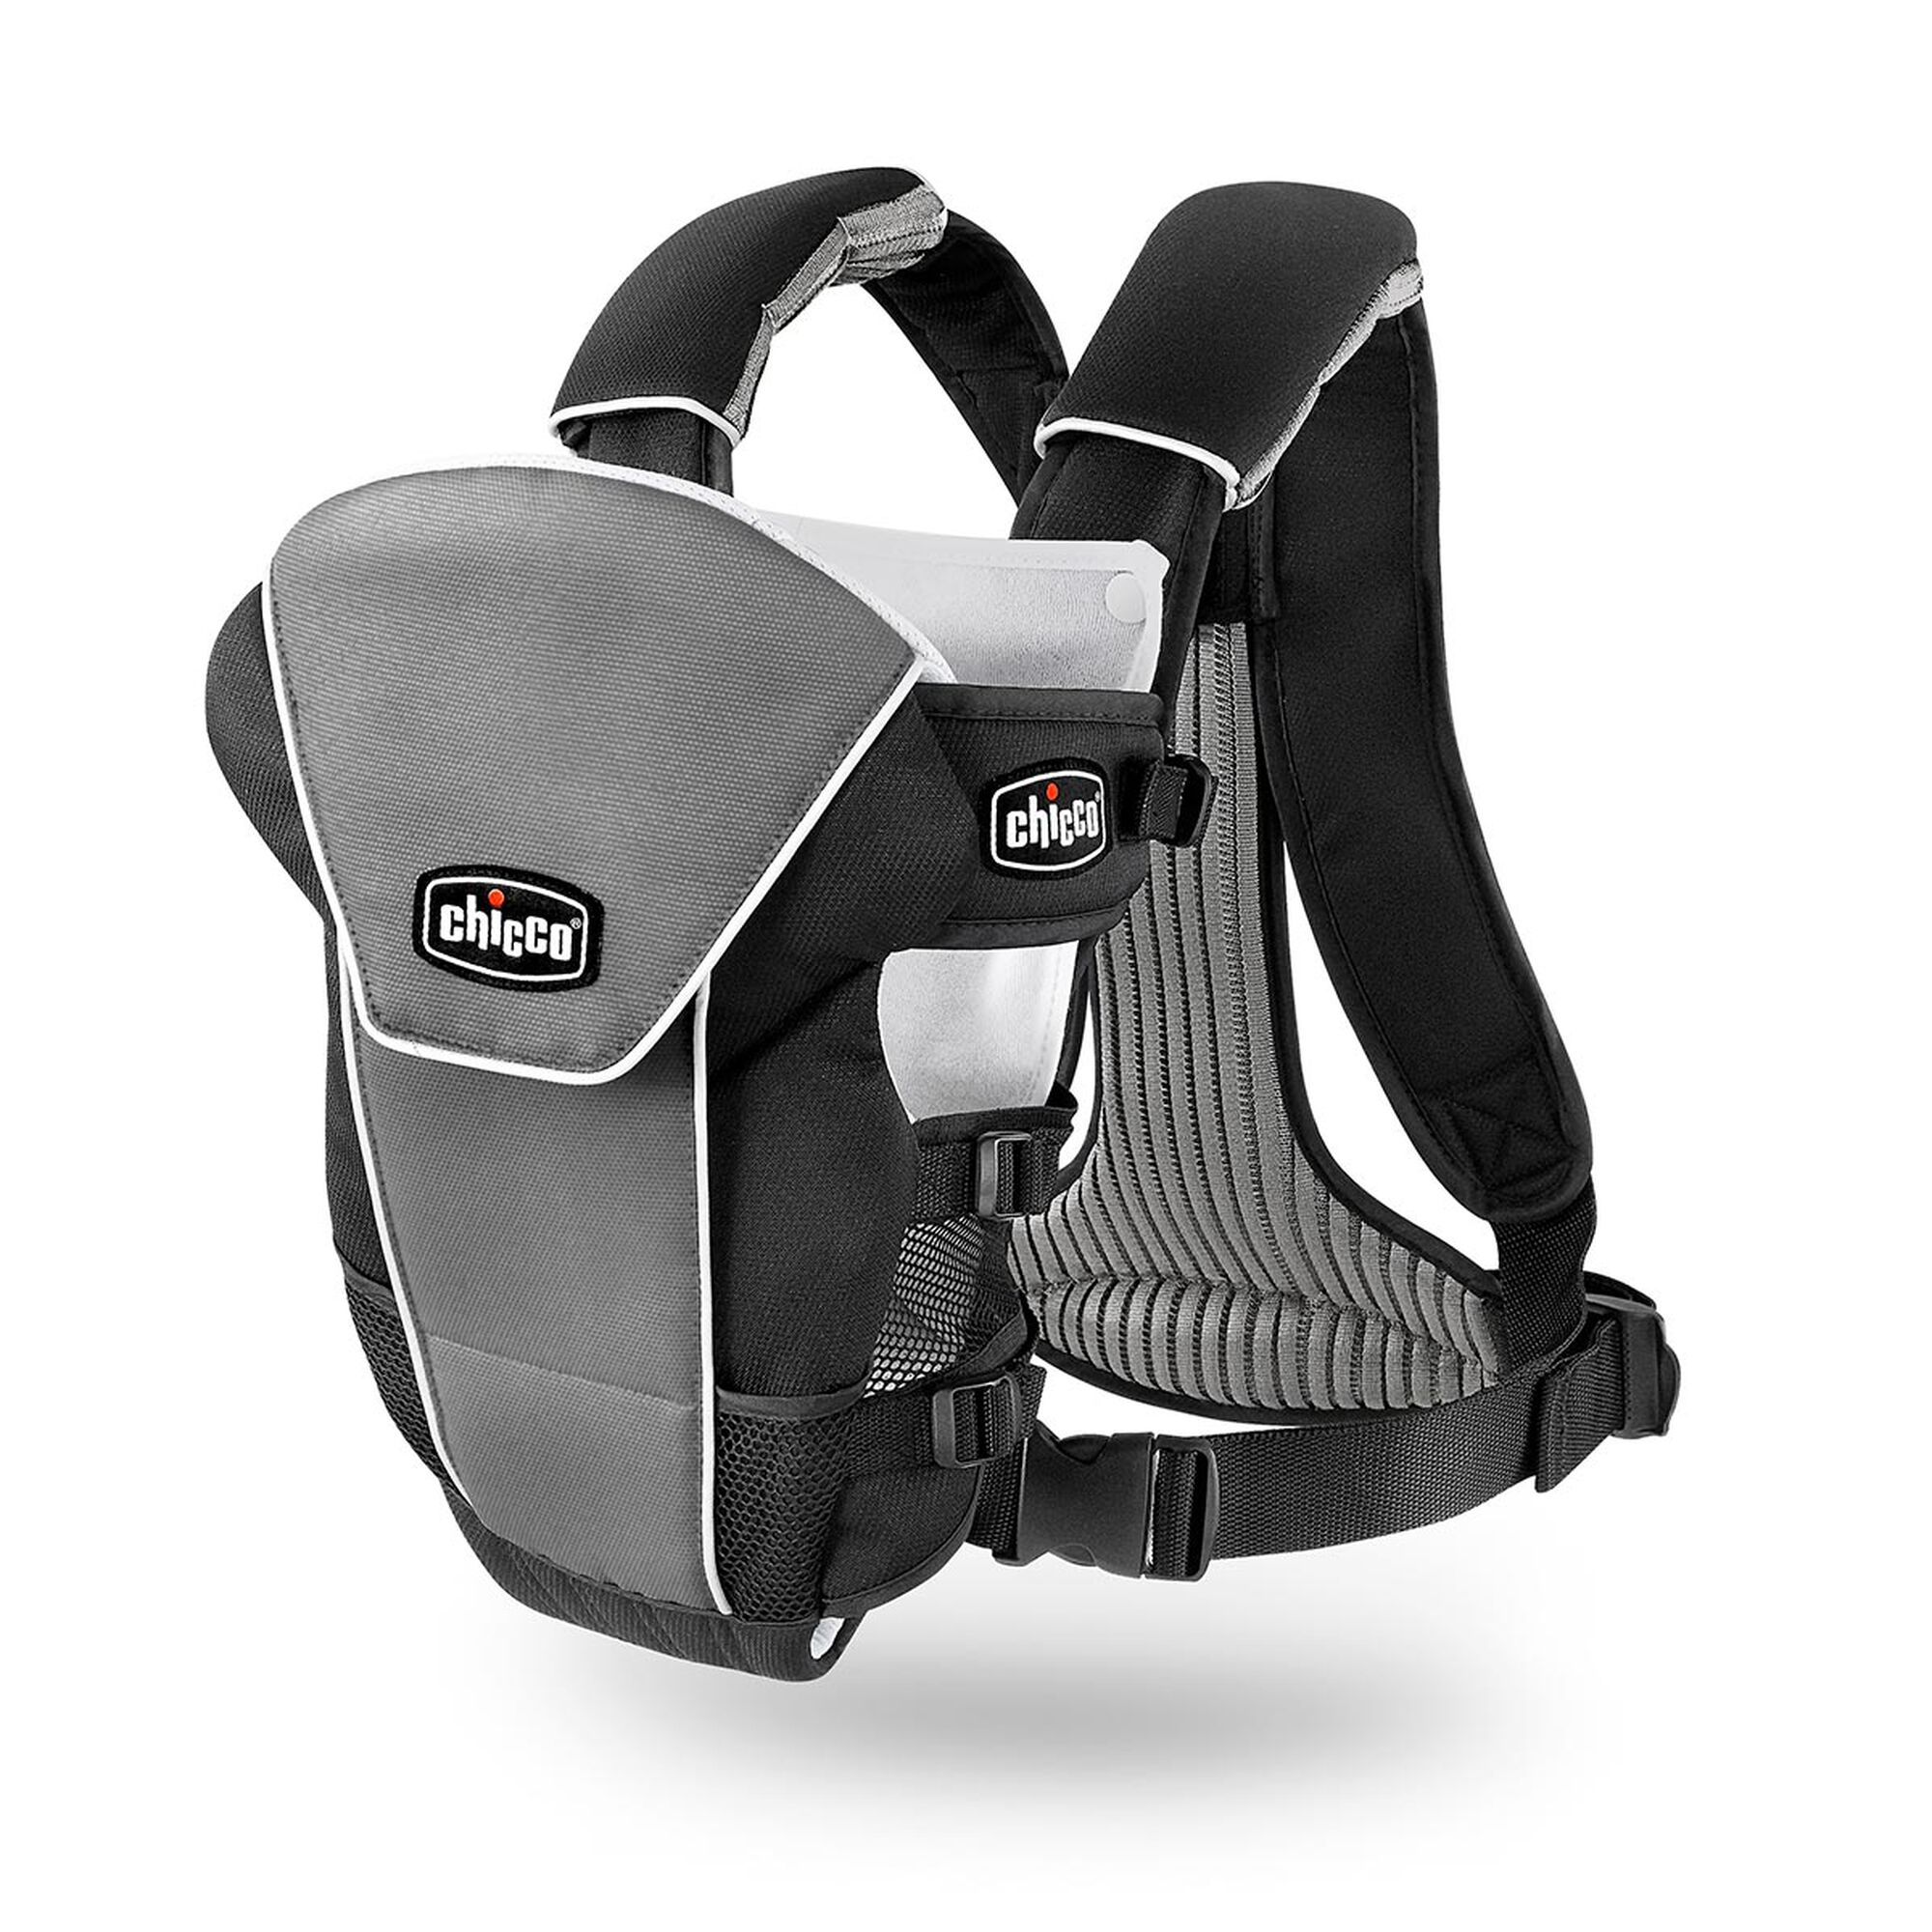 Ultrasoft Magic Air Infant Carrier Q Collection Chicco